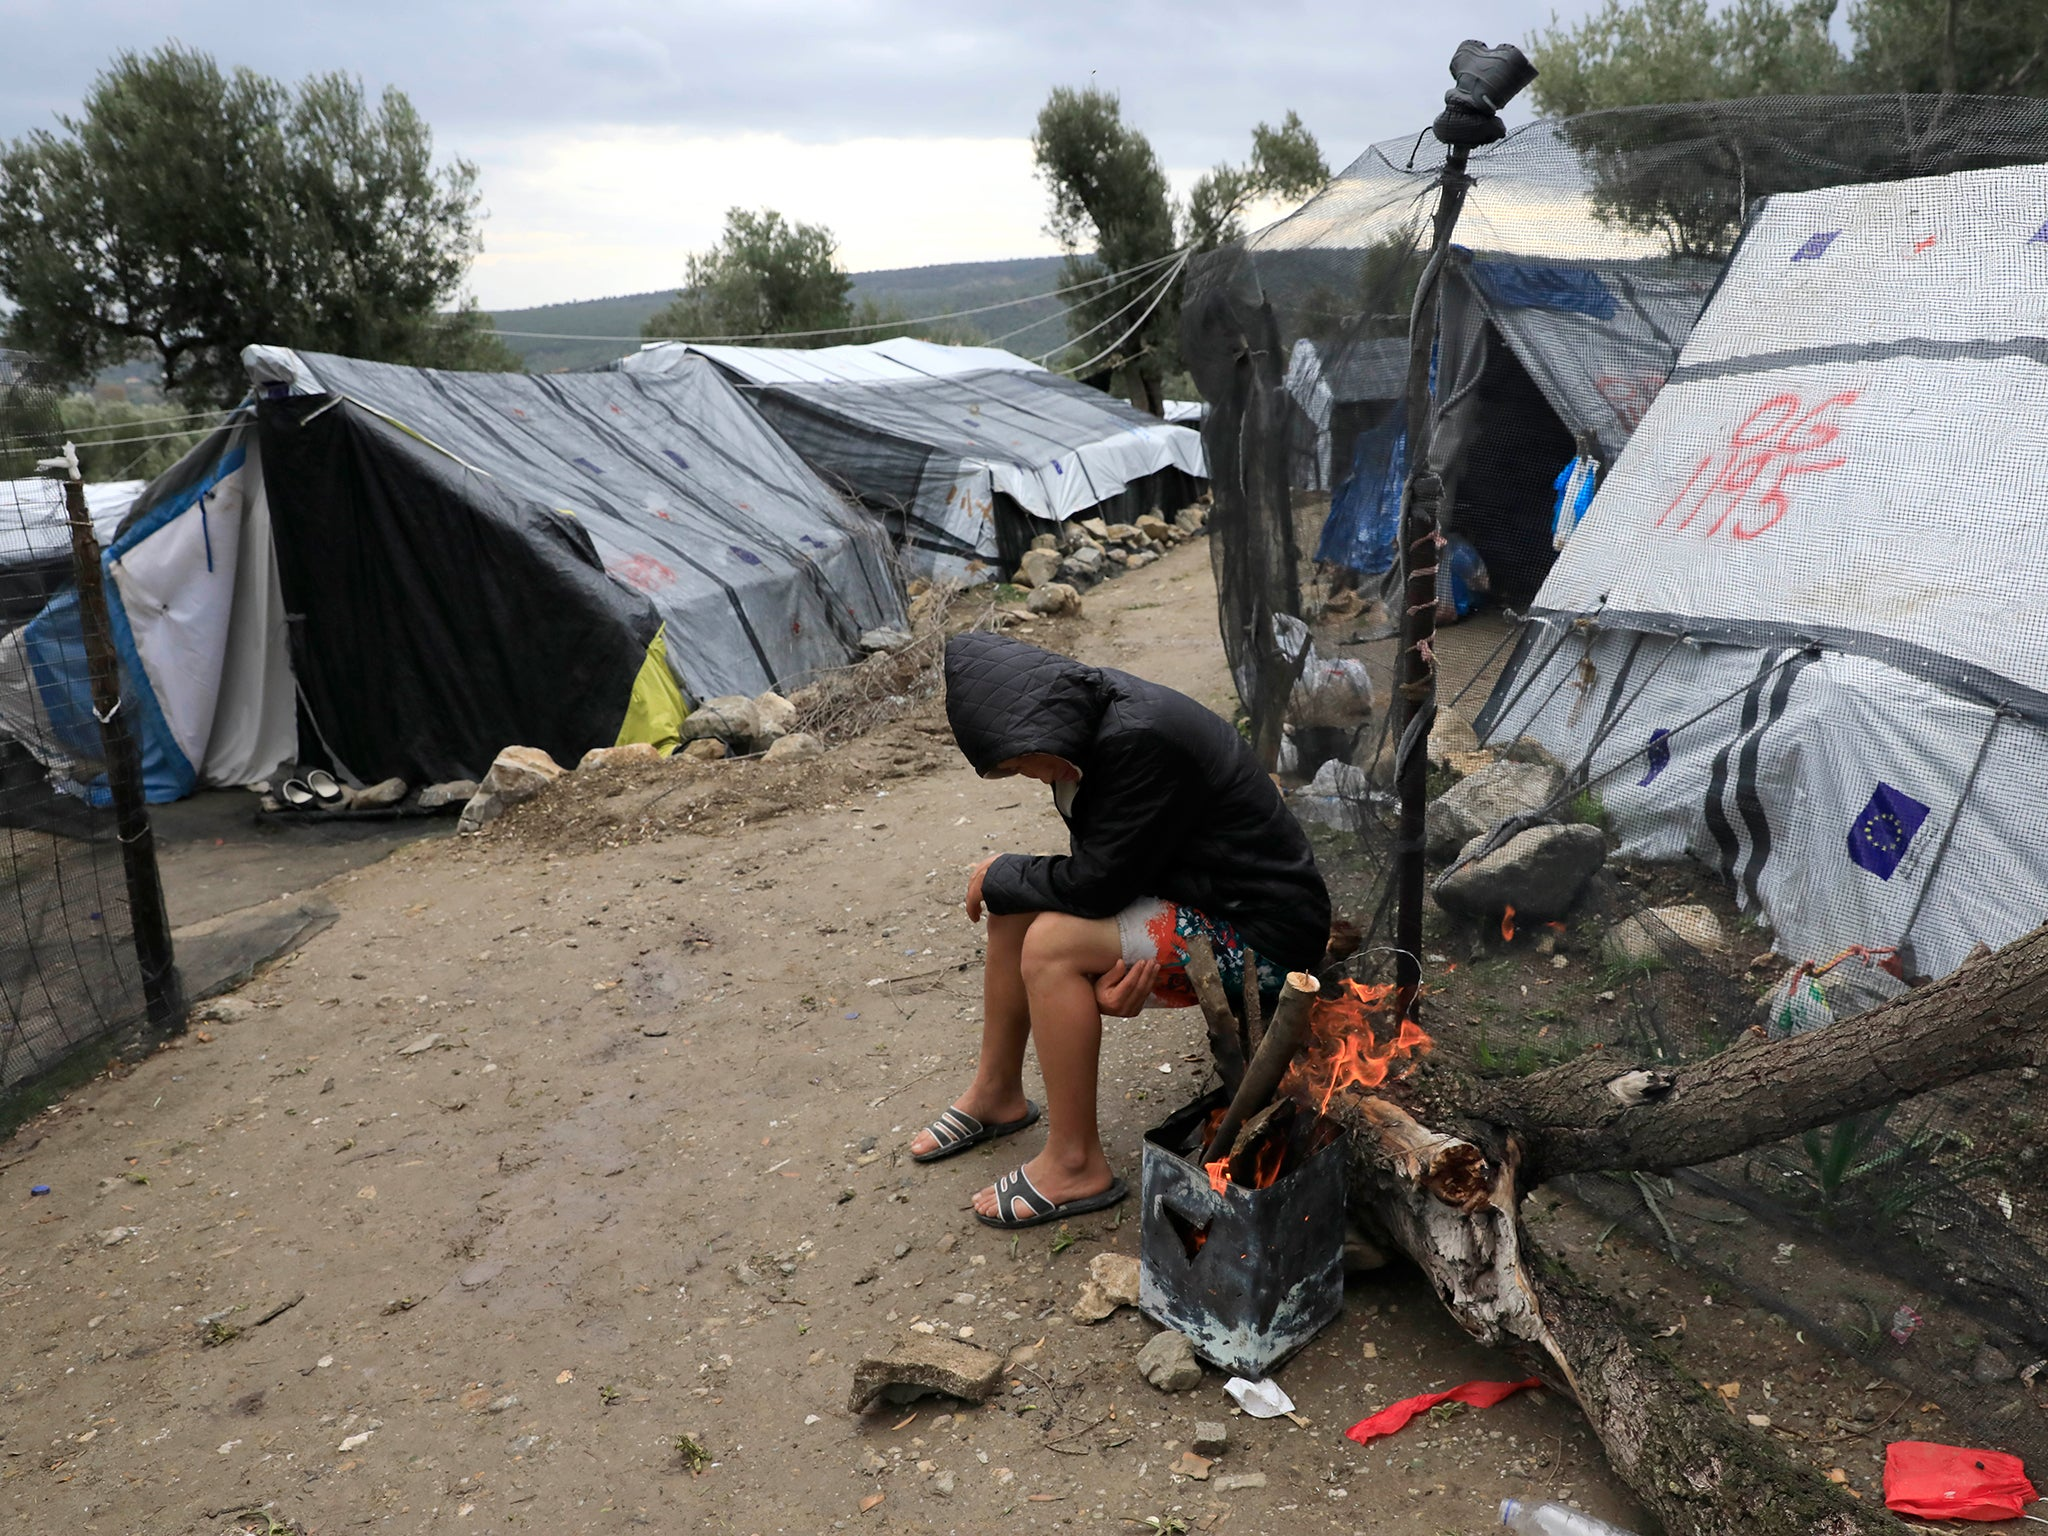 Hundreds of torture survivors, pregnant women and children 'abandoned' in Greek refugee camps, Oxfam says